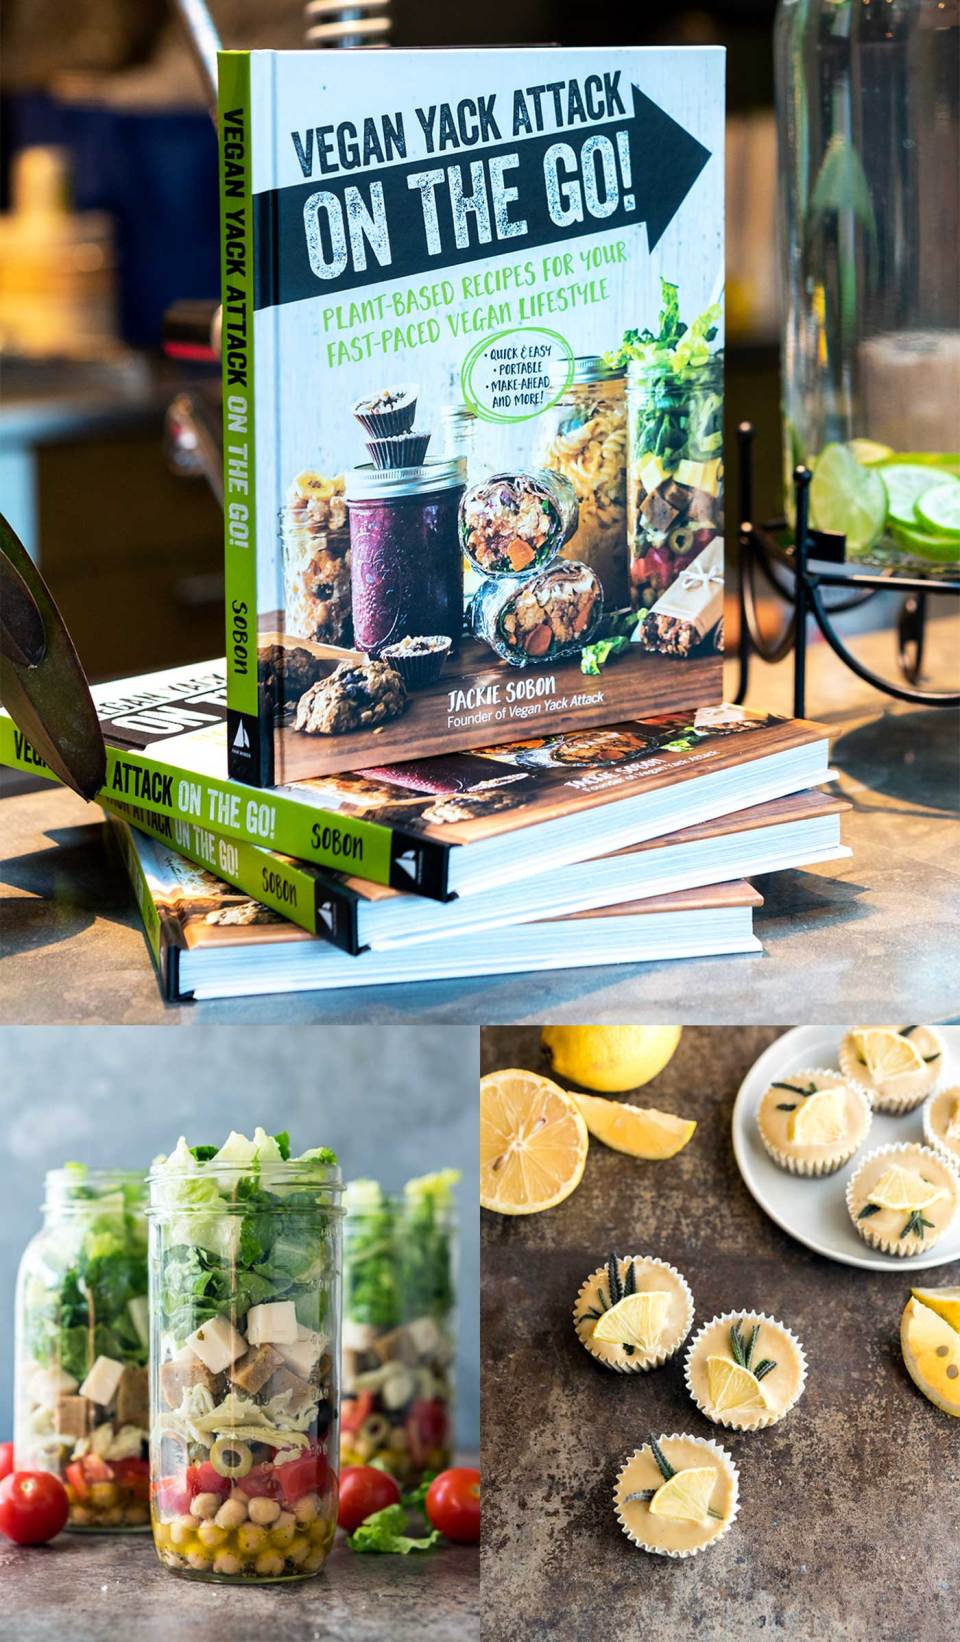 It's here! It's here! The release date of my second cookbook, Vegan Yack Attack On the Go! Quick recipes, make-ahead recipes, lunch, and recipes for on the move; this book has it all.